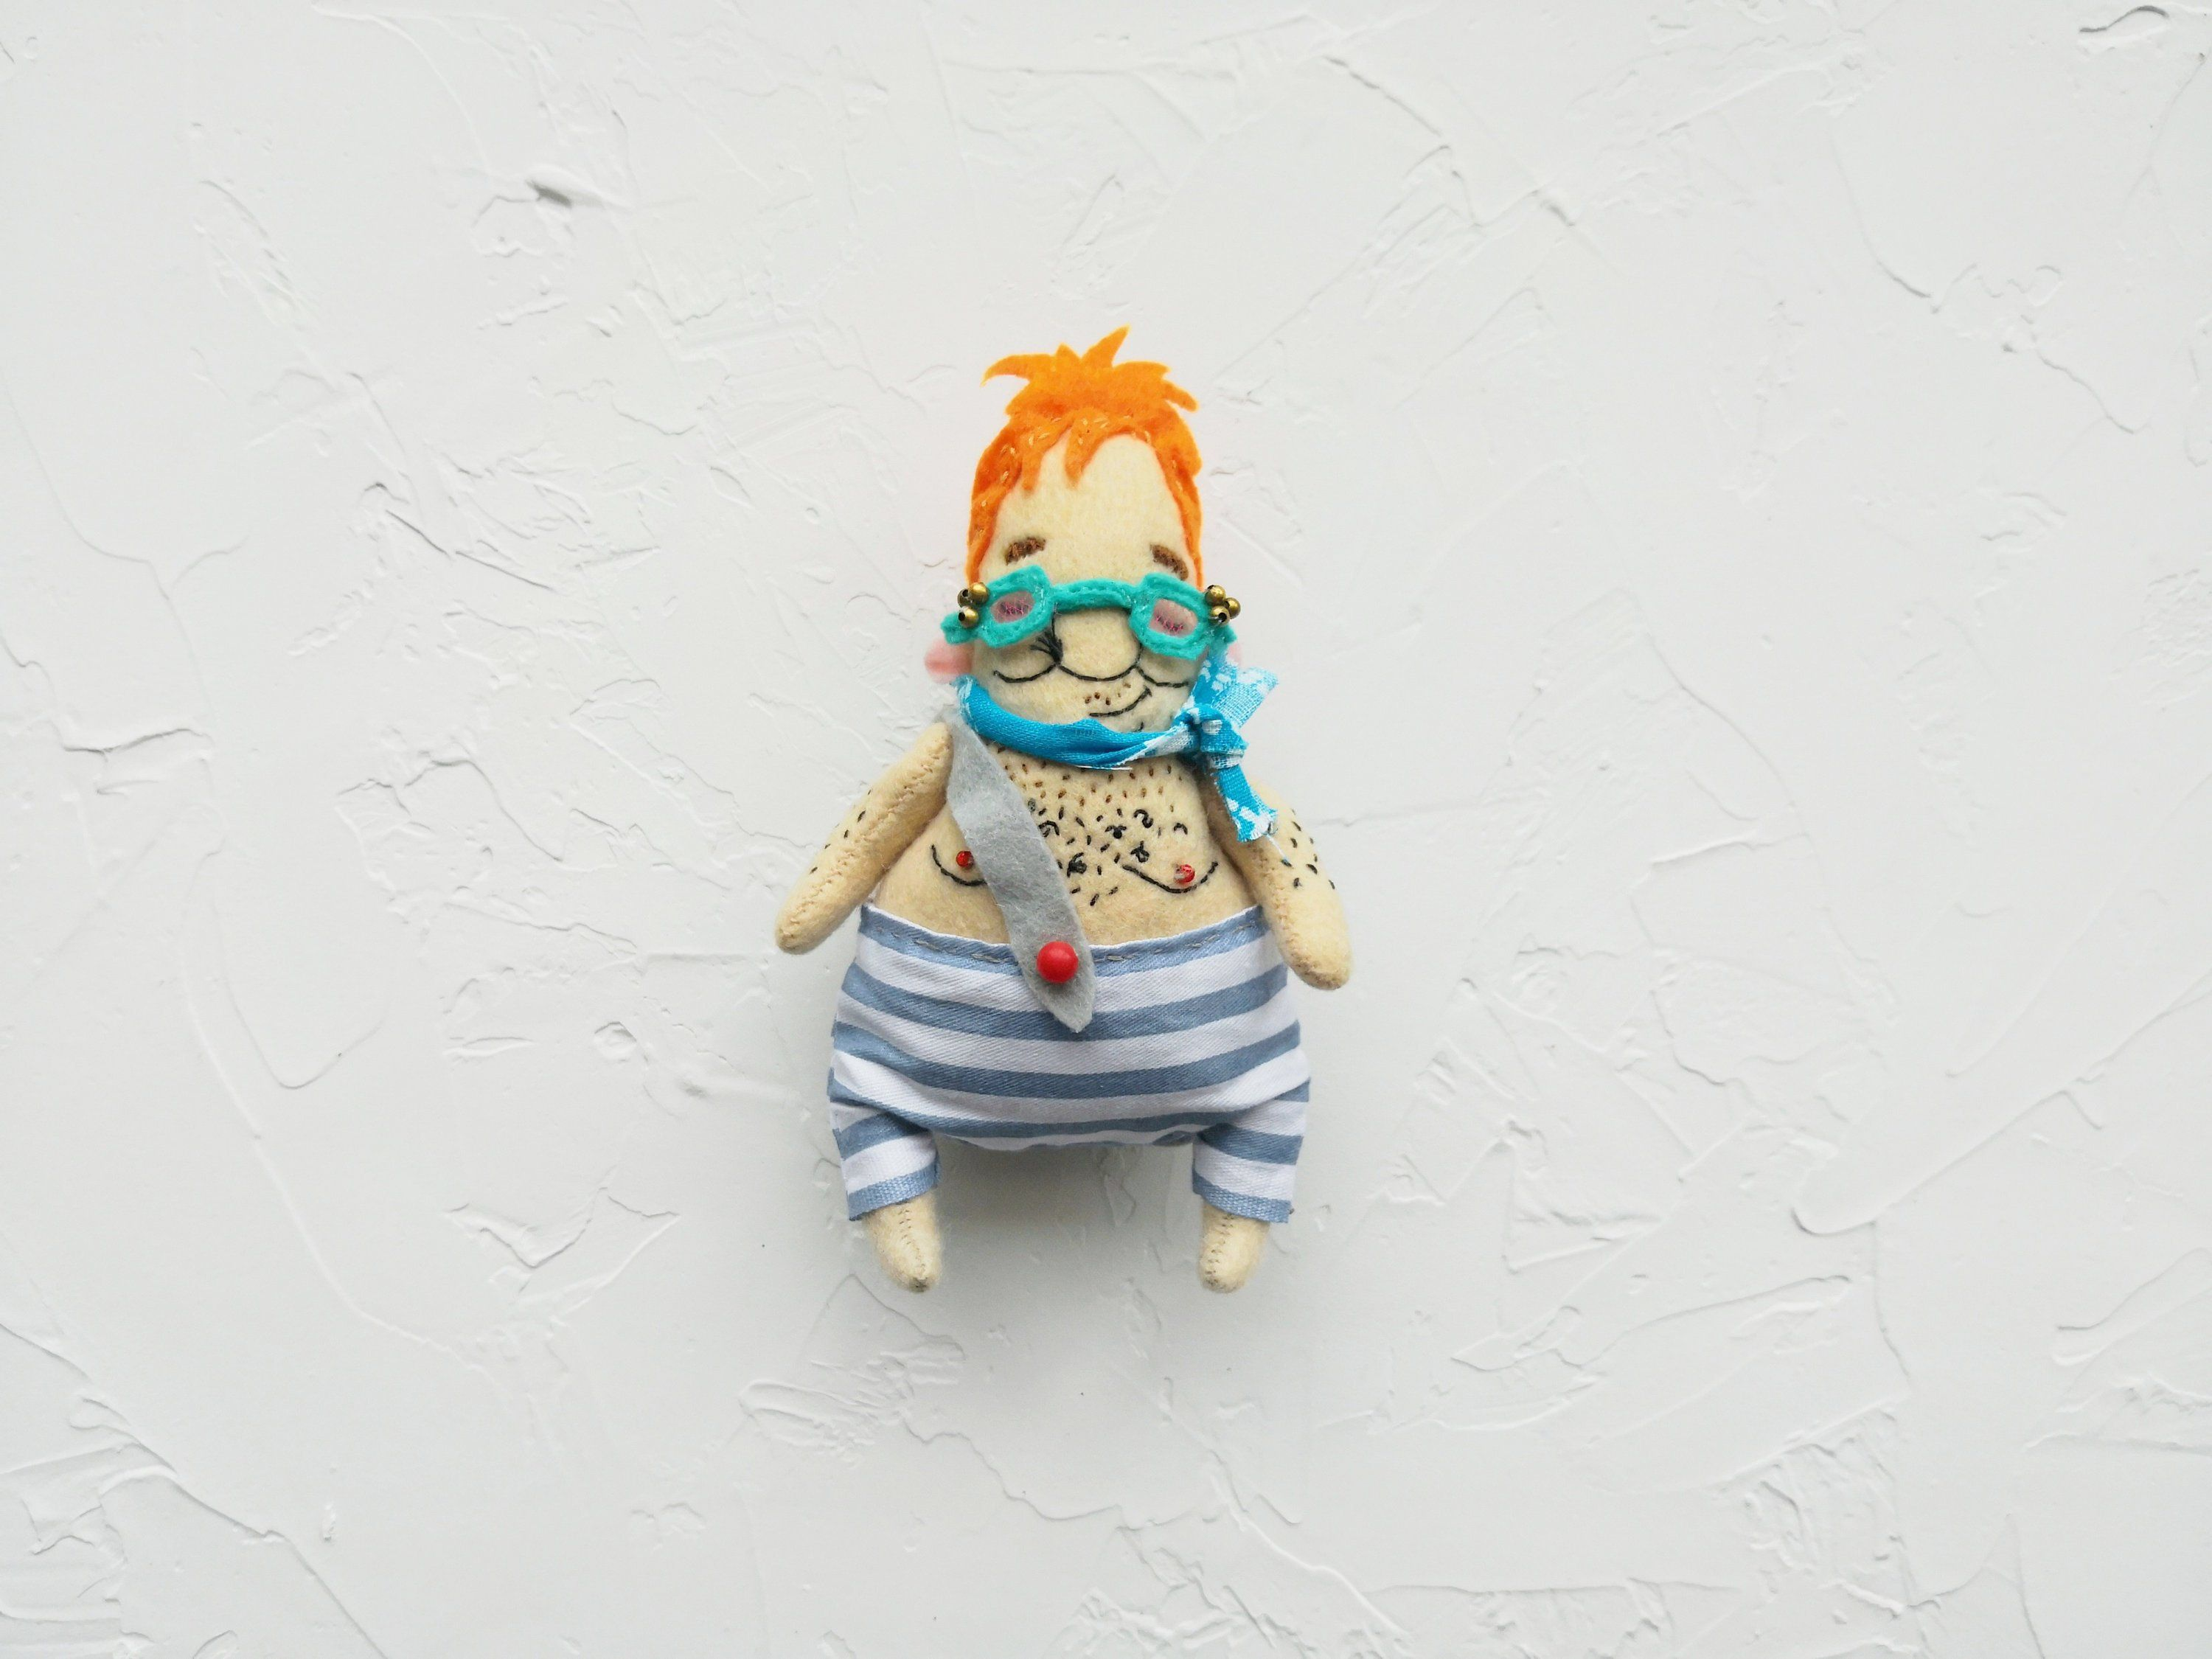 Pin On Funny Unique Toys And Gifts